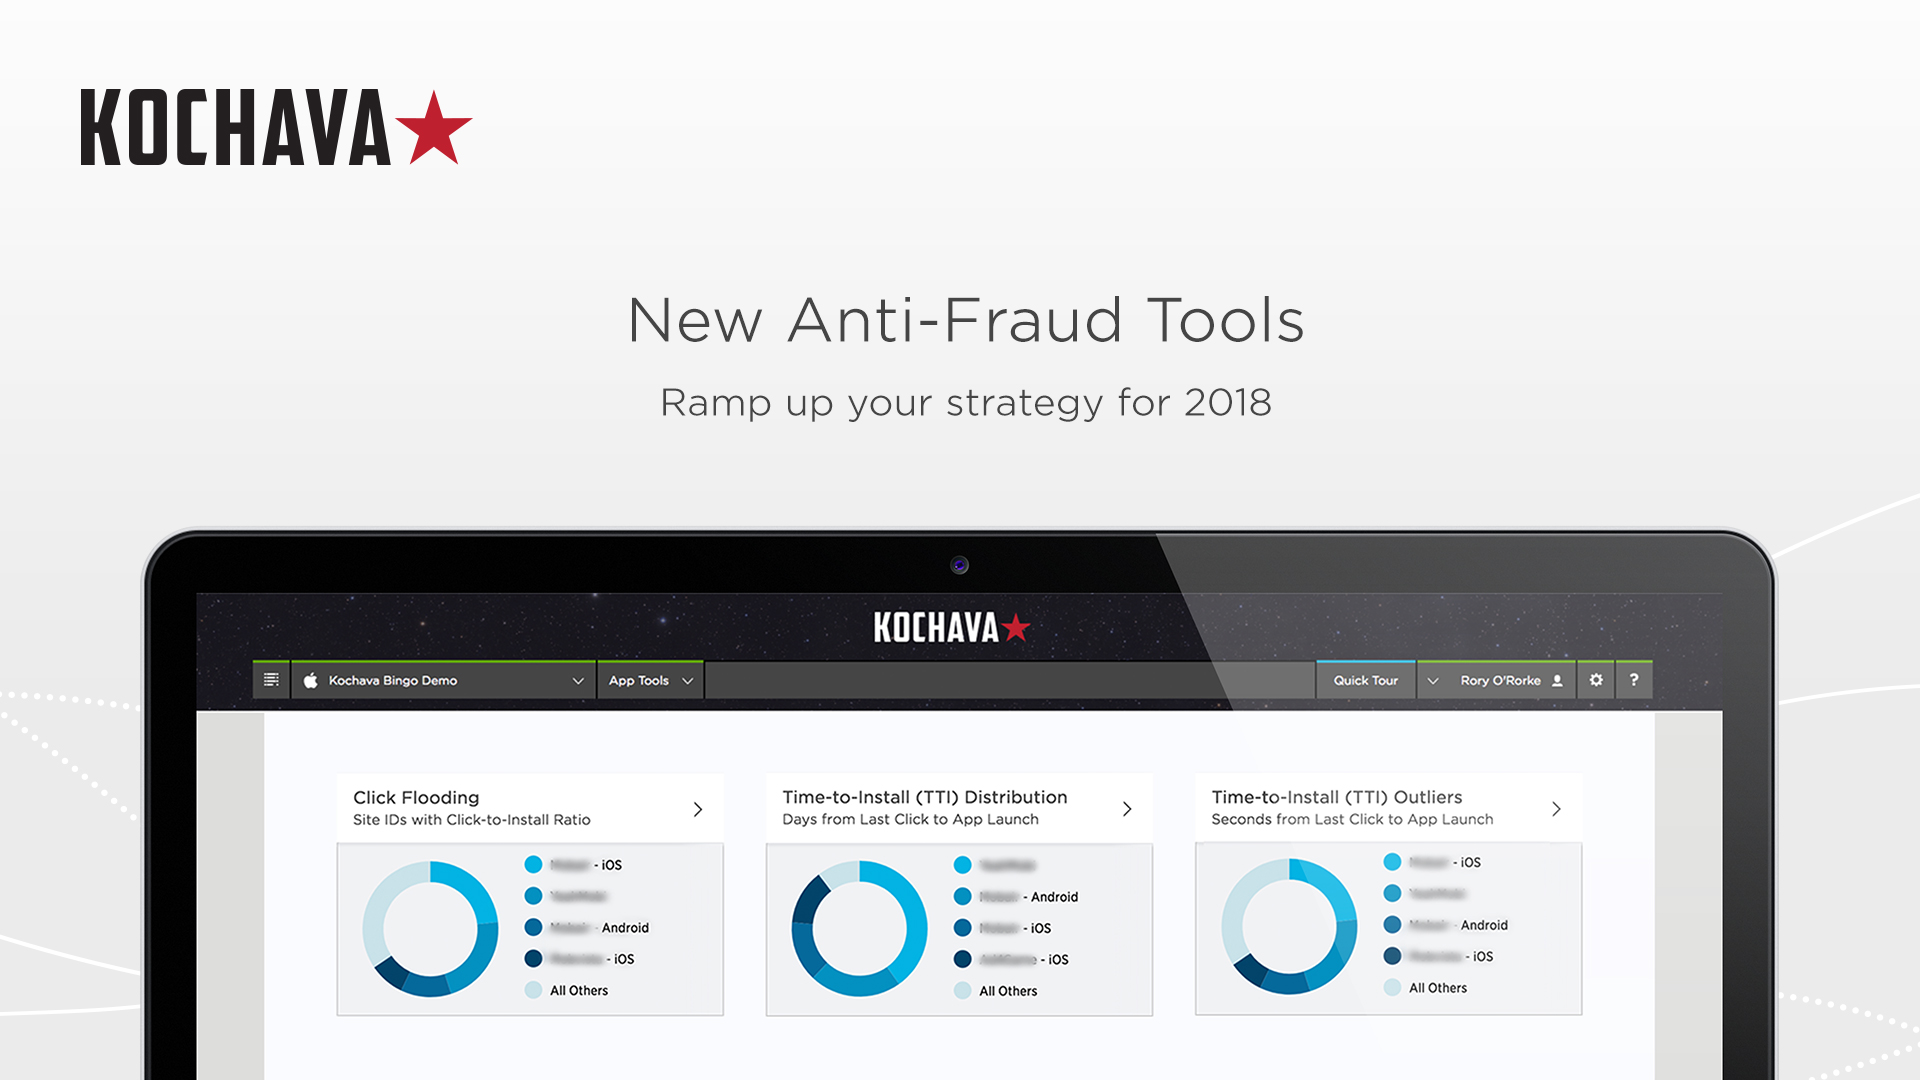 New Anti-Fraud Tools by Kochava